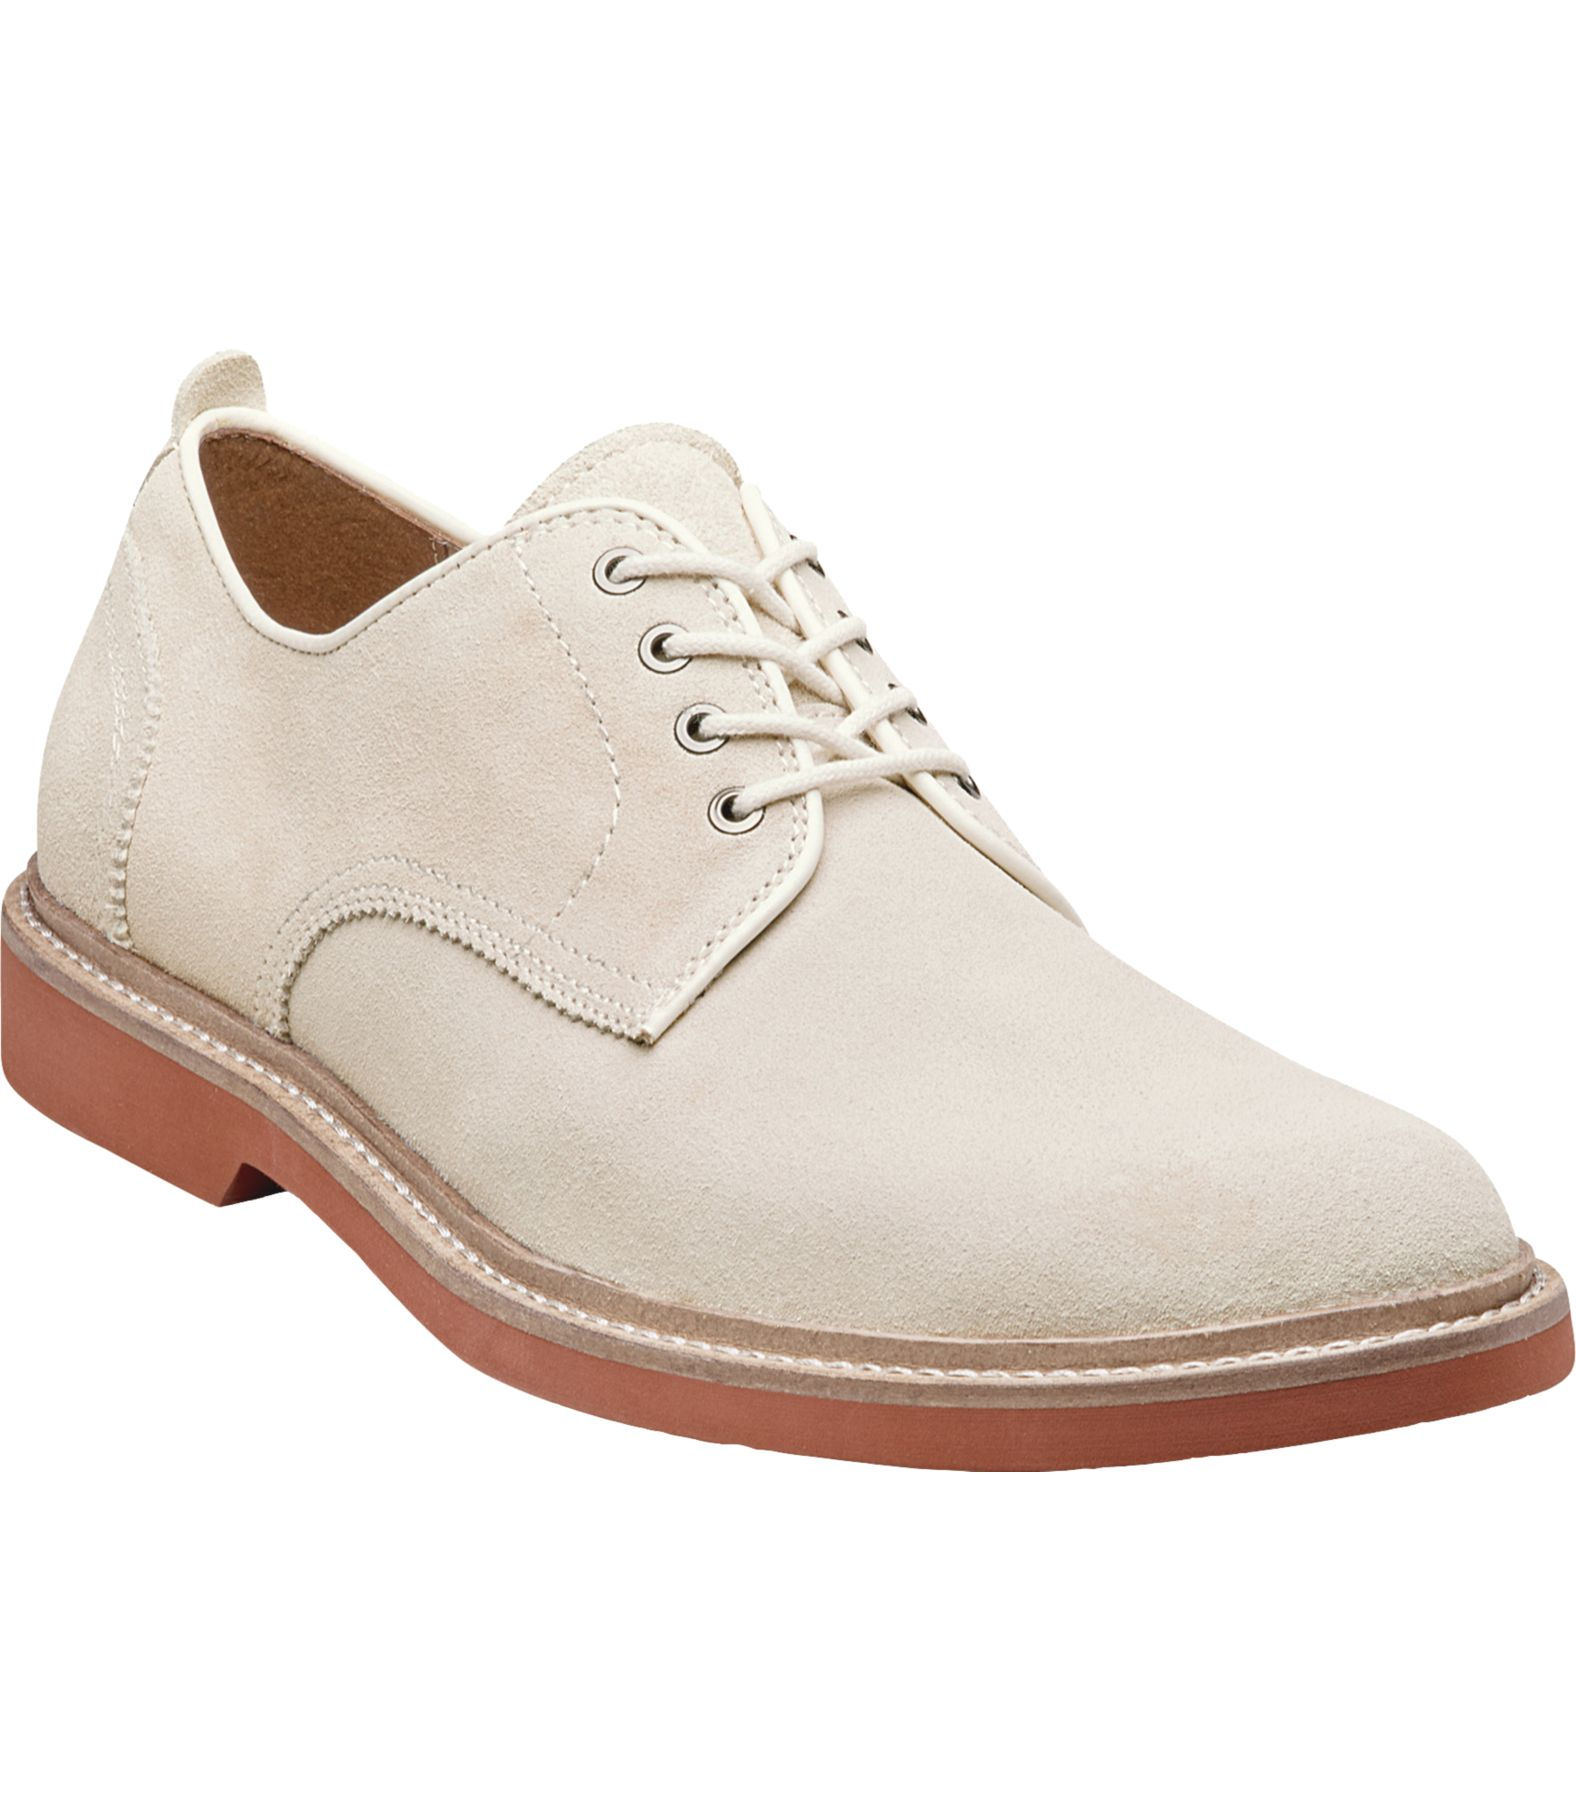 Rockabilly Men's Clothing Bucktown Oxford by Florsheim Mens Shoes -  $115.00 AT vintagedancer.com